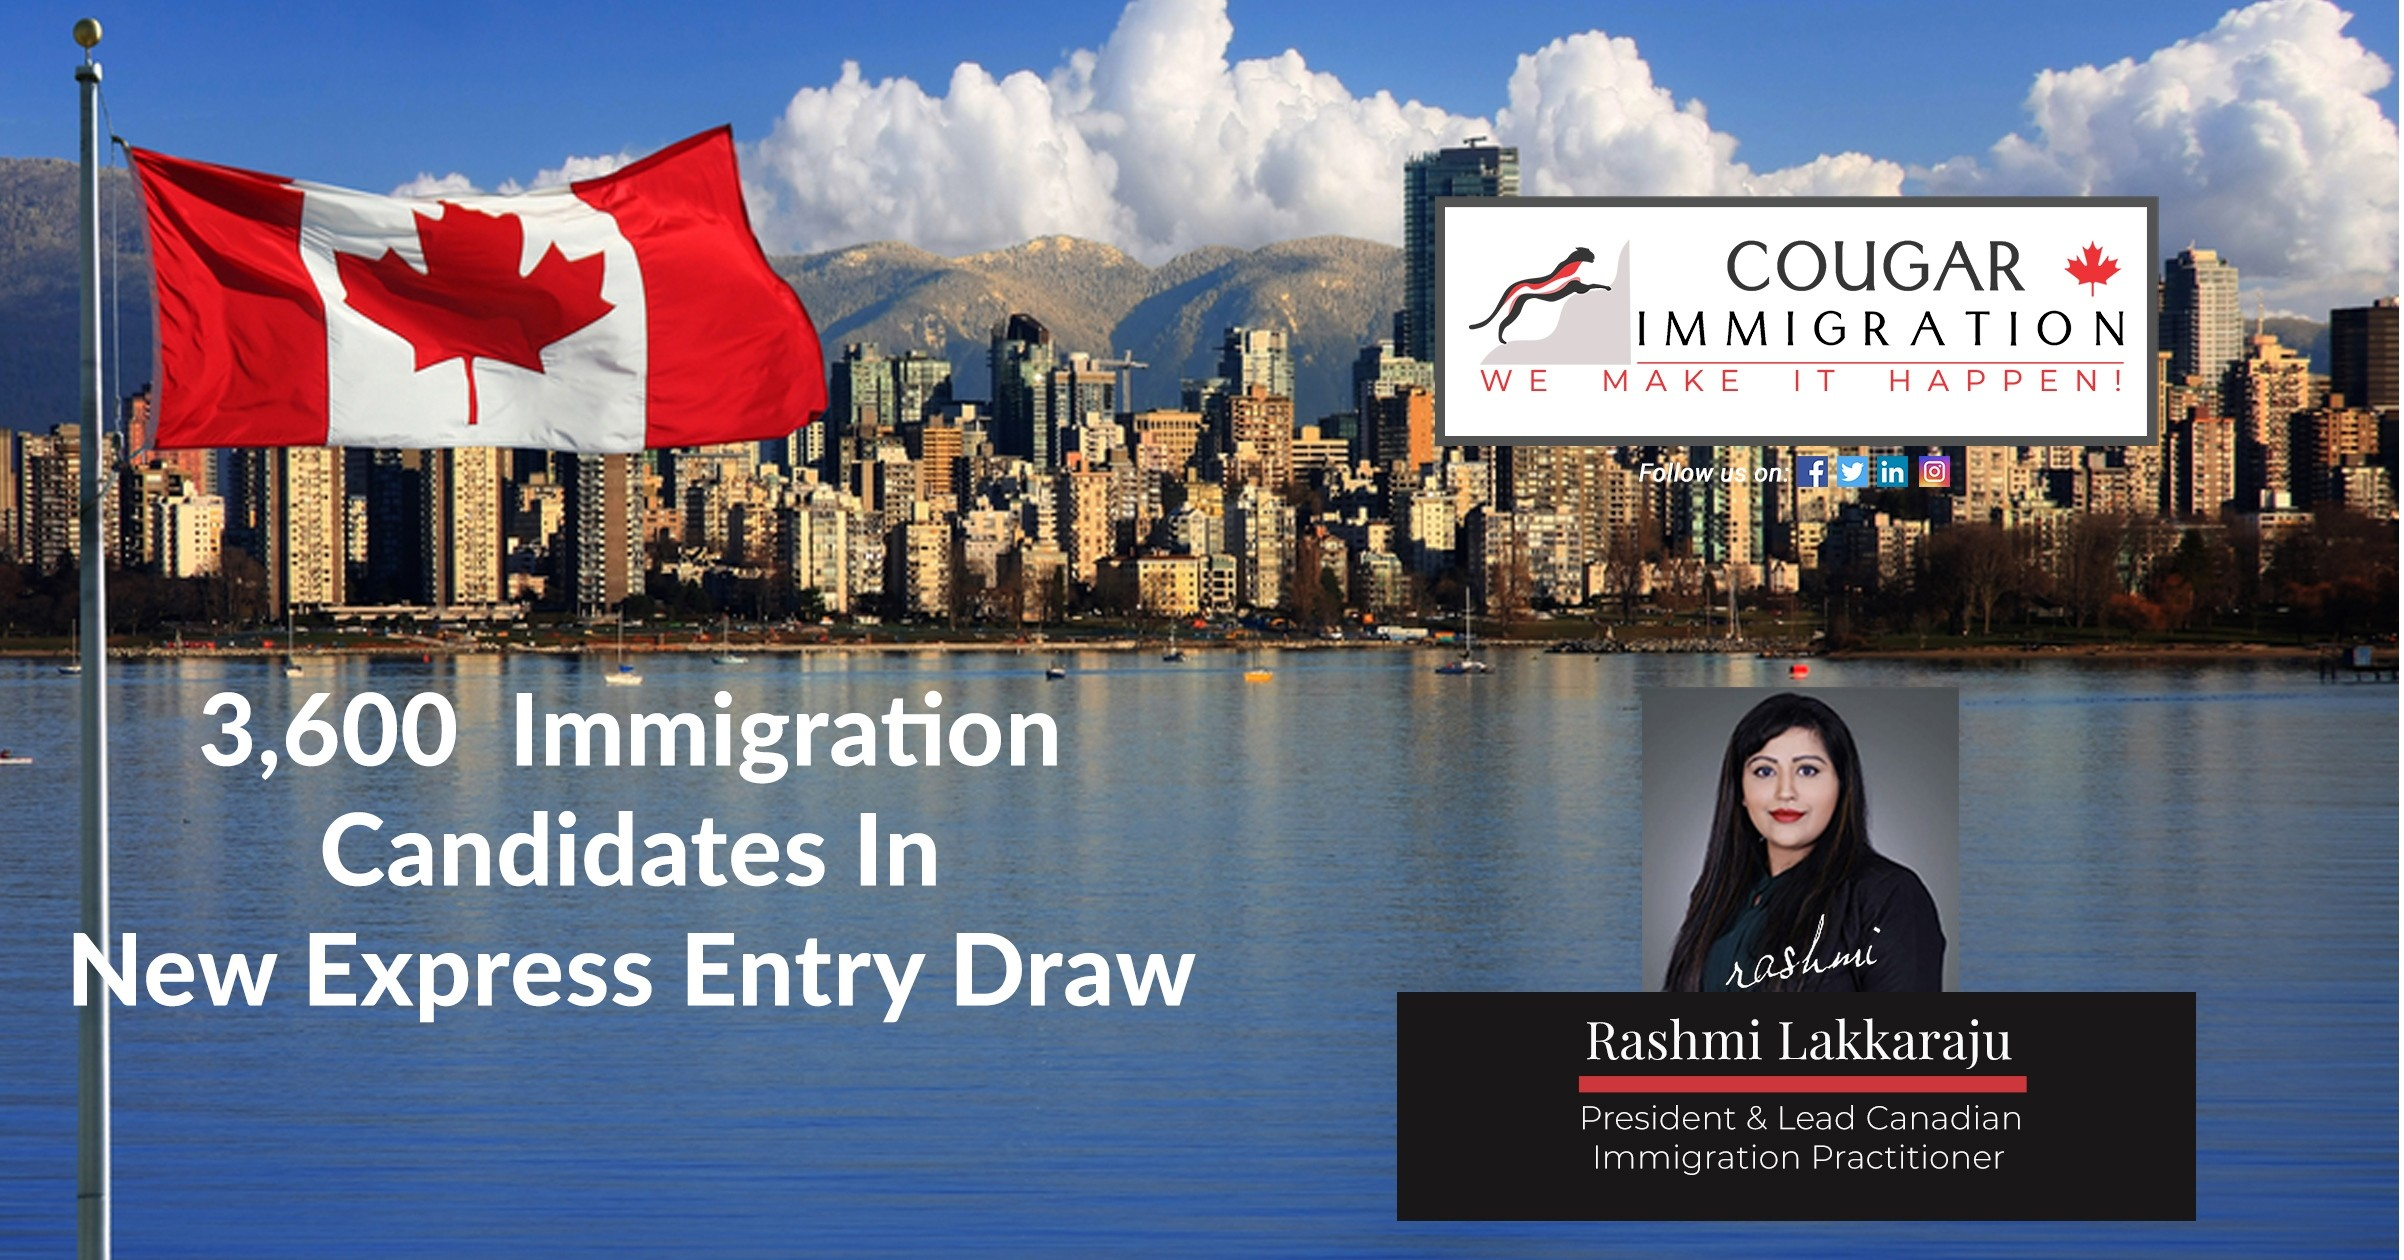 Canada Invites 3,600 Immigration Candidates In New Express Entry Draw thumbnail